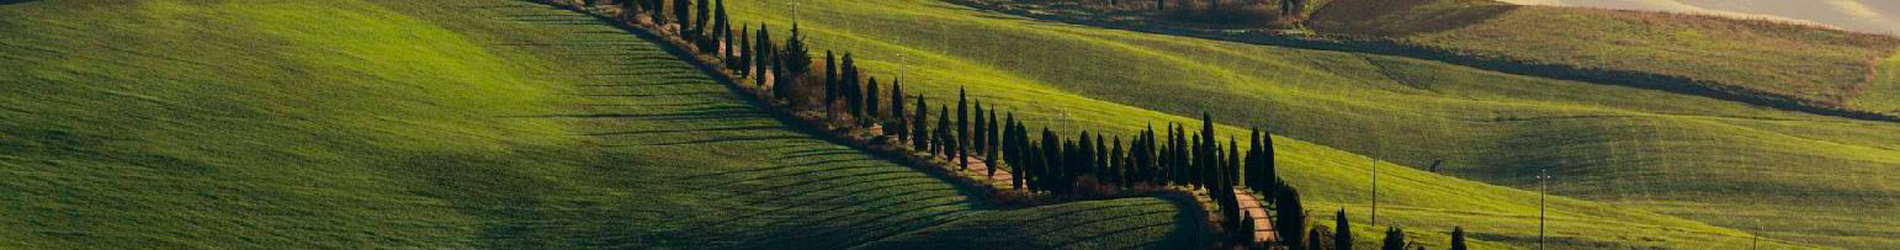 services: renting a villa in tuscany has never been easier